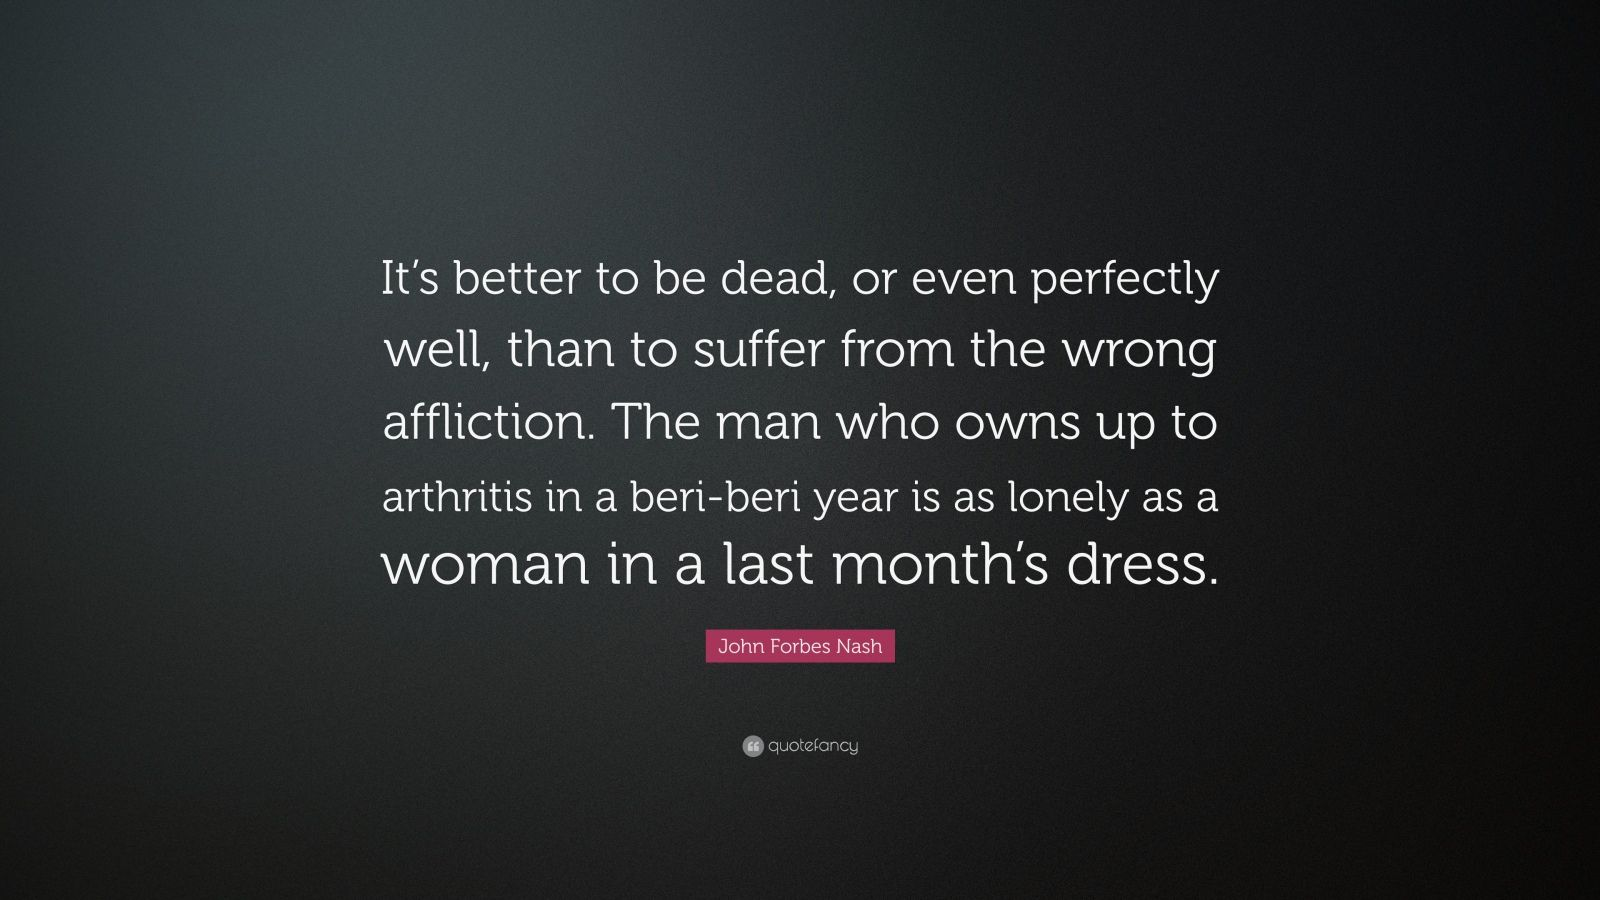 """John Forbes Nash Quote: """"It's better to be dead, or even perfectly well, than to suffer from the wrong affliction. The man who owns up to arthritis in a beri-beri year is as lonely as a woman in a last month's dress."""""""